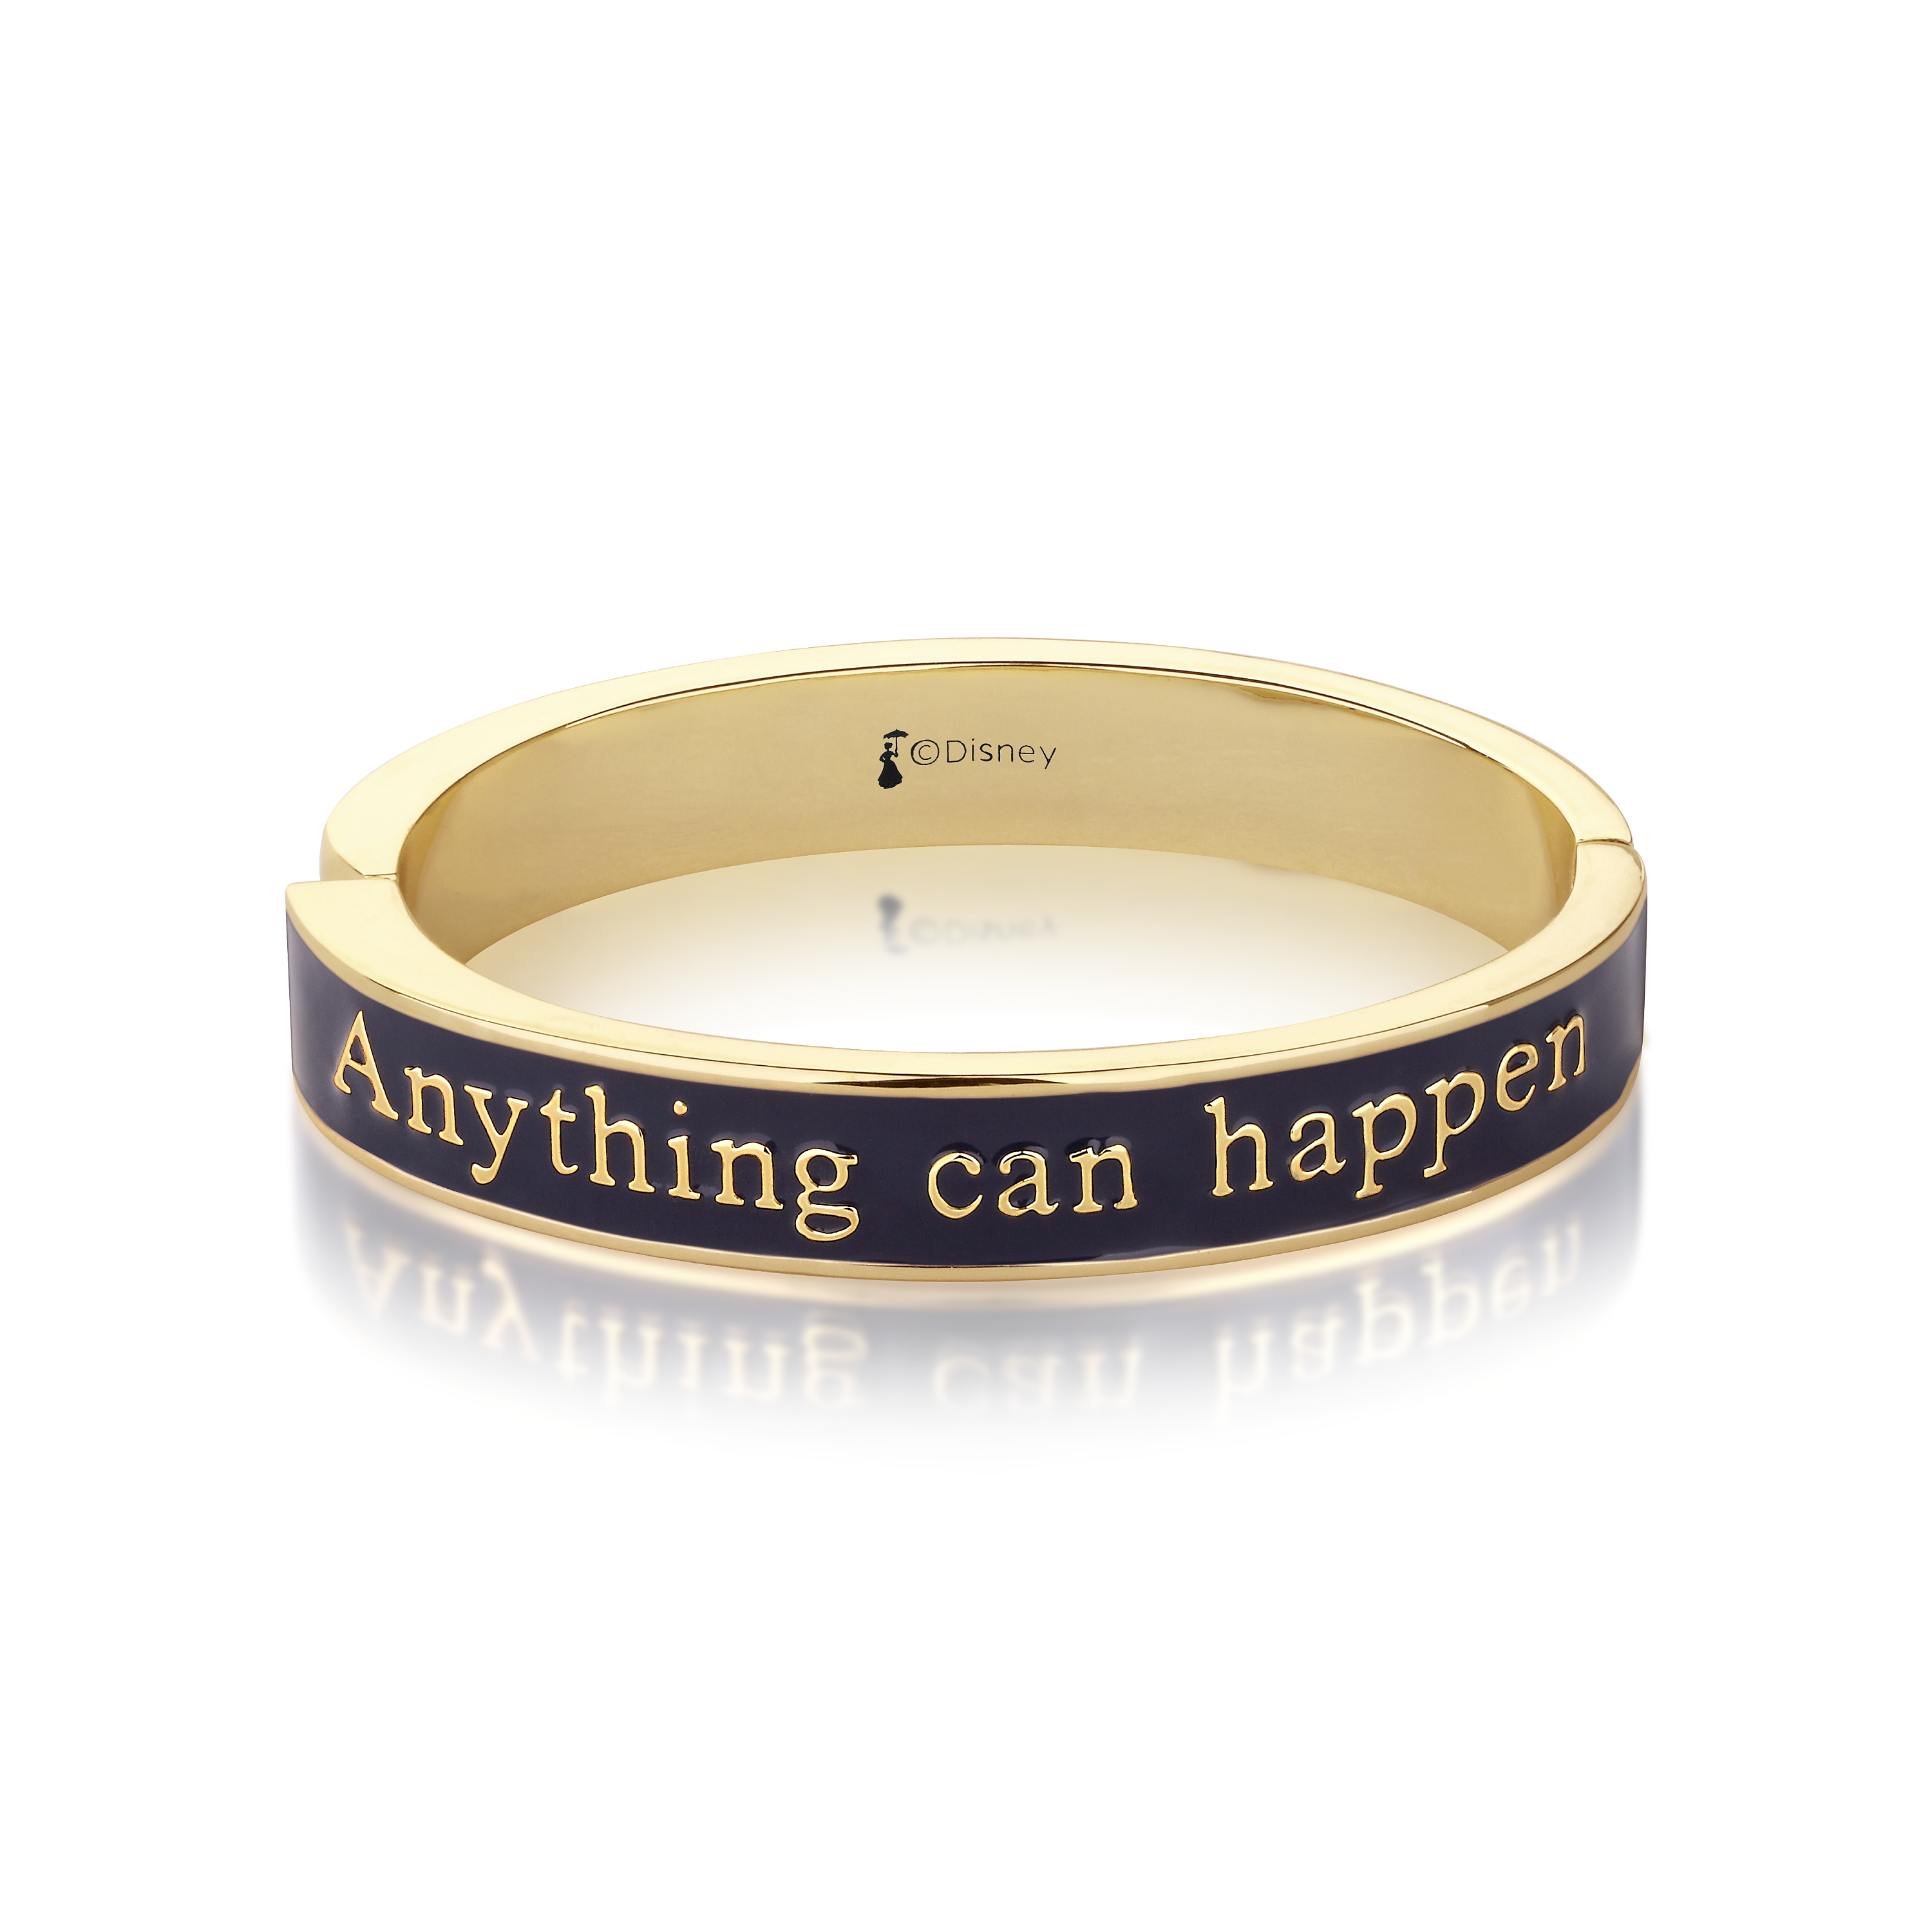 4. 'Anything can happen '